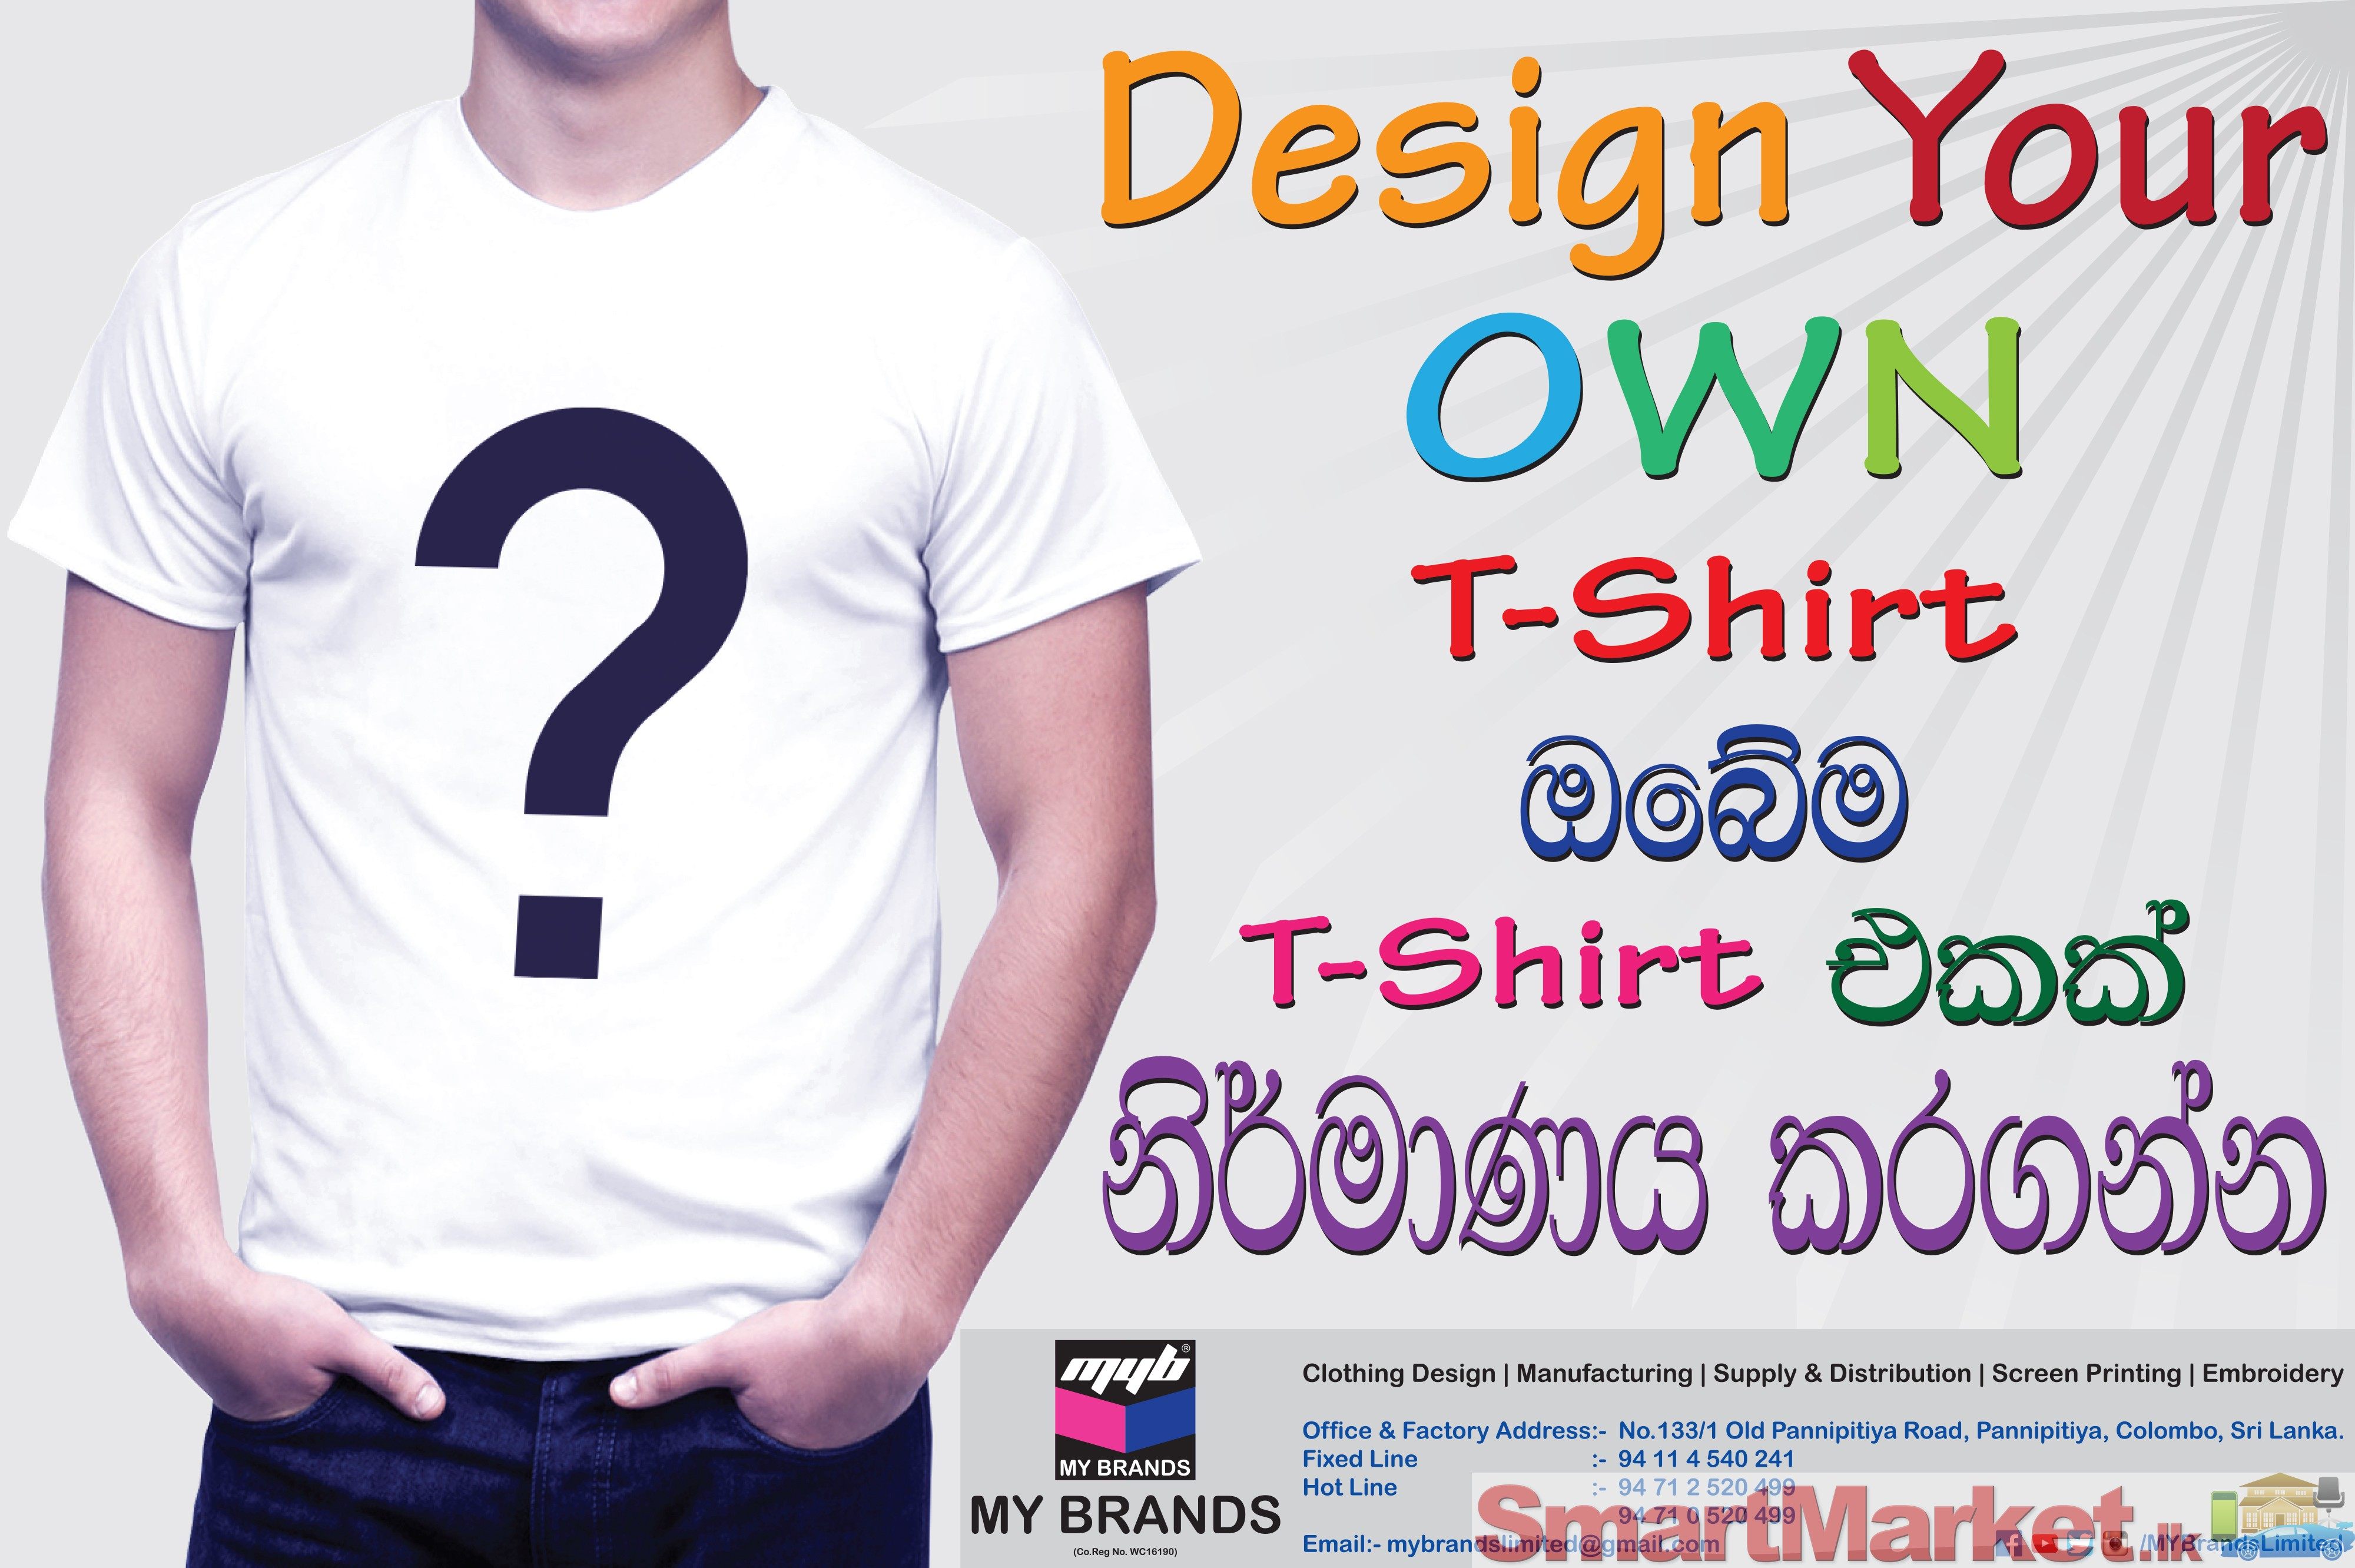 Design your own t shirt for Create your own design t shirt